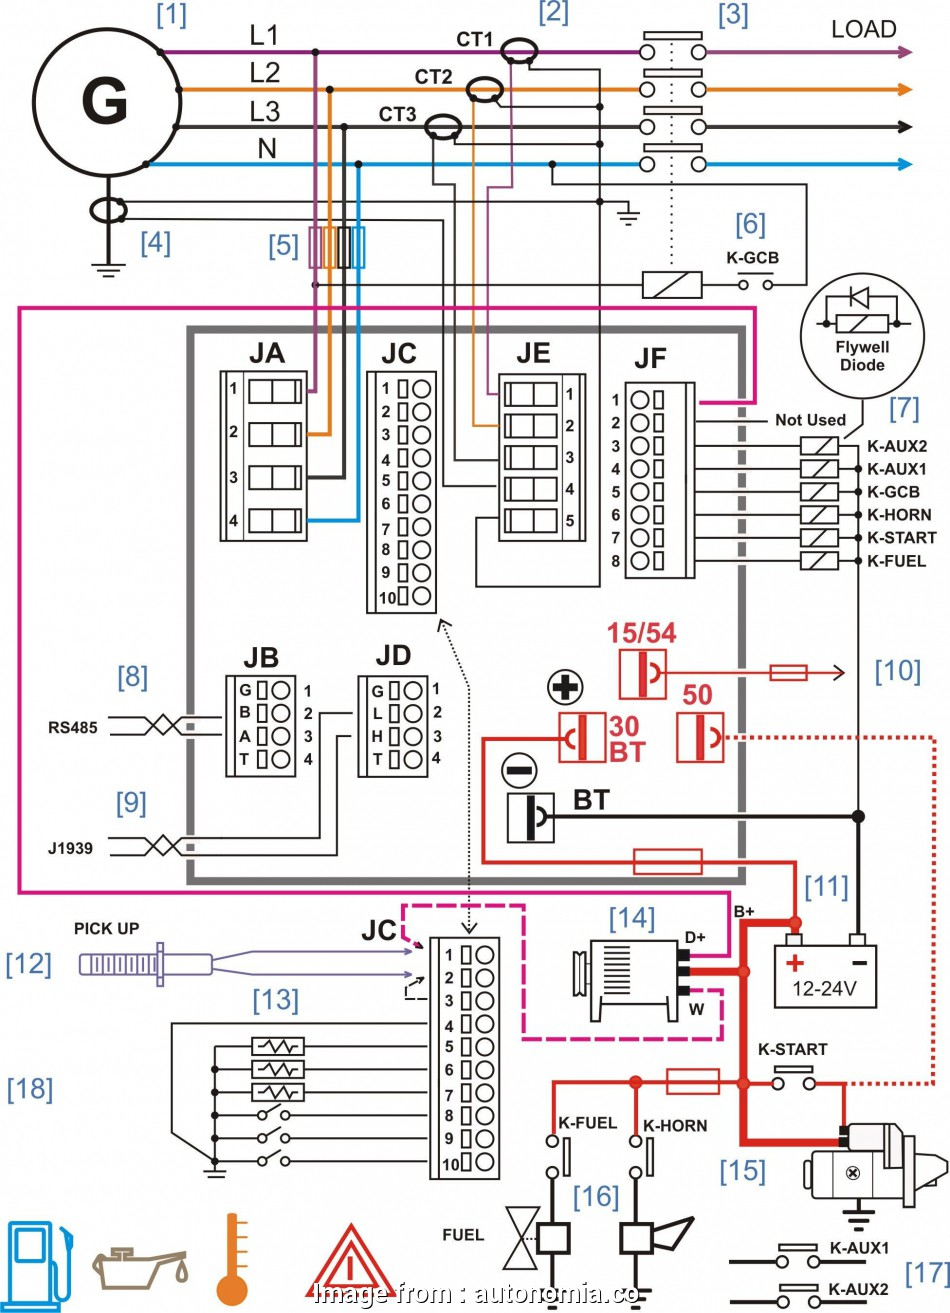 electrical control panel wiring tutorial electrical control panels wiring harness wiring diagram wiring rh deosireaper co Access Control Wiring Diagram Water 13 Top Electrical Control Panel Wiring Tutorial Collections